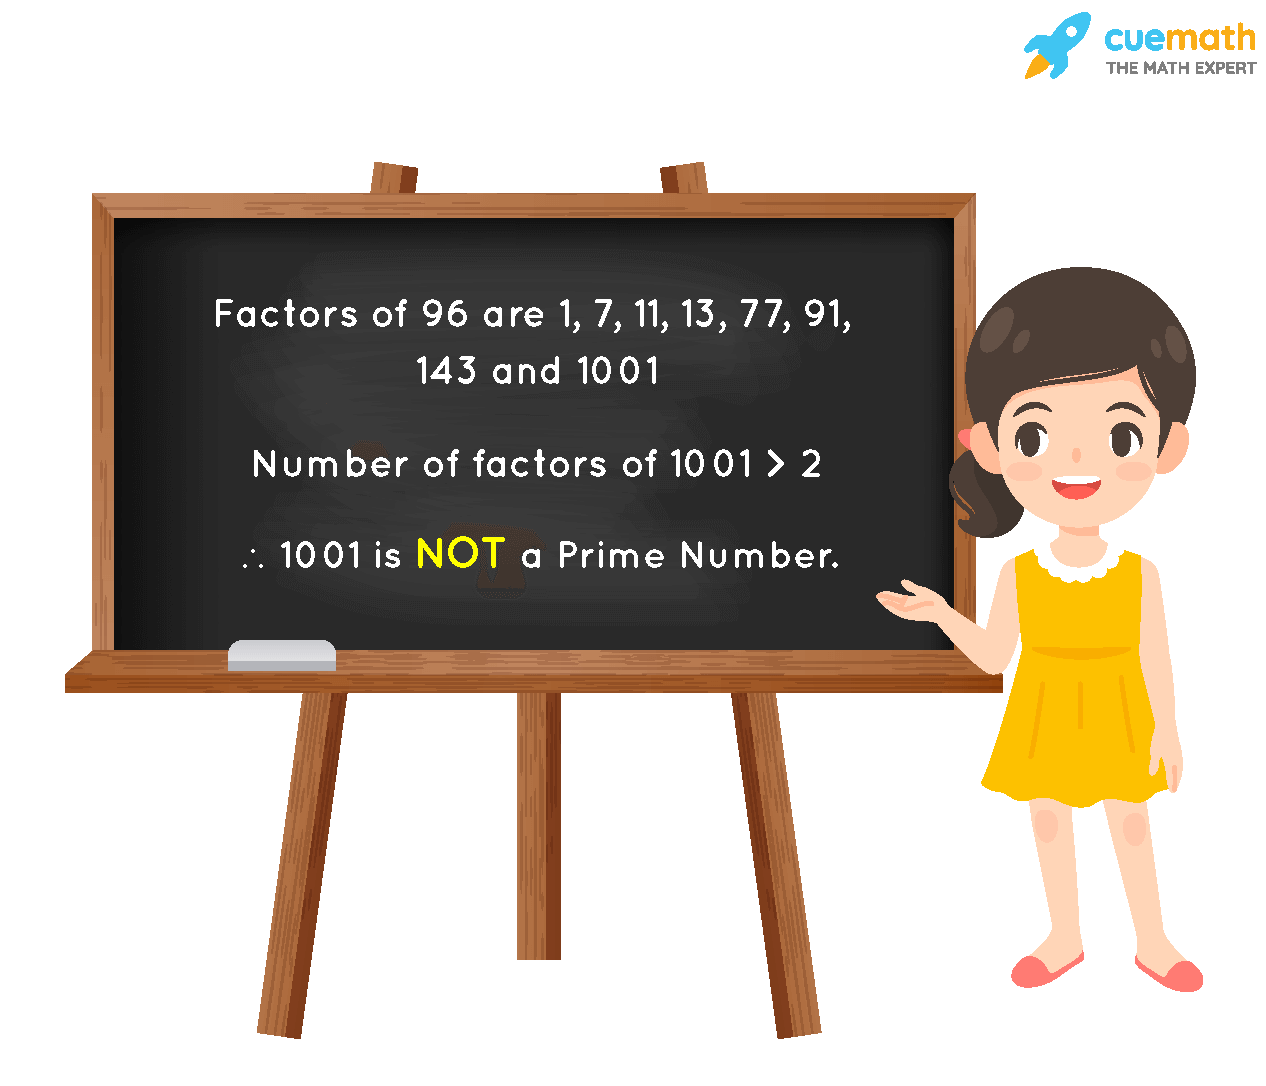 Is 1001 a Prime Number?